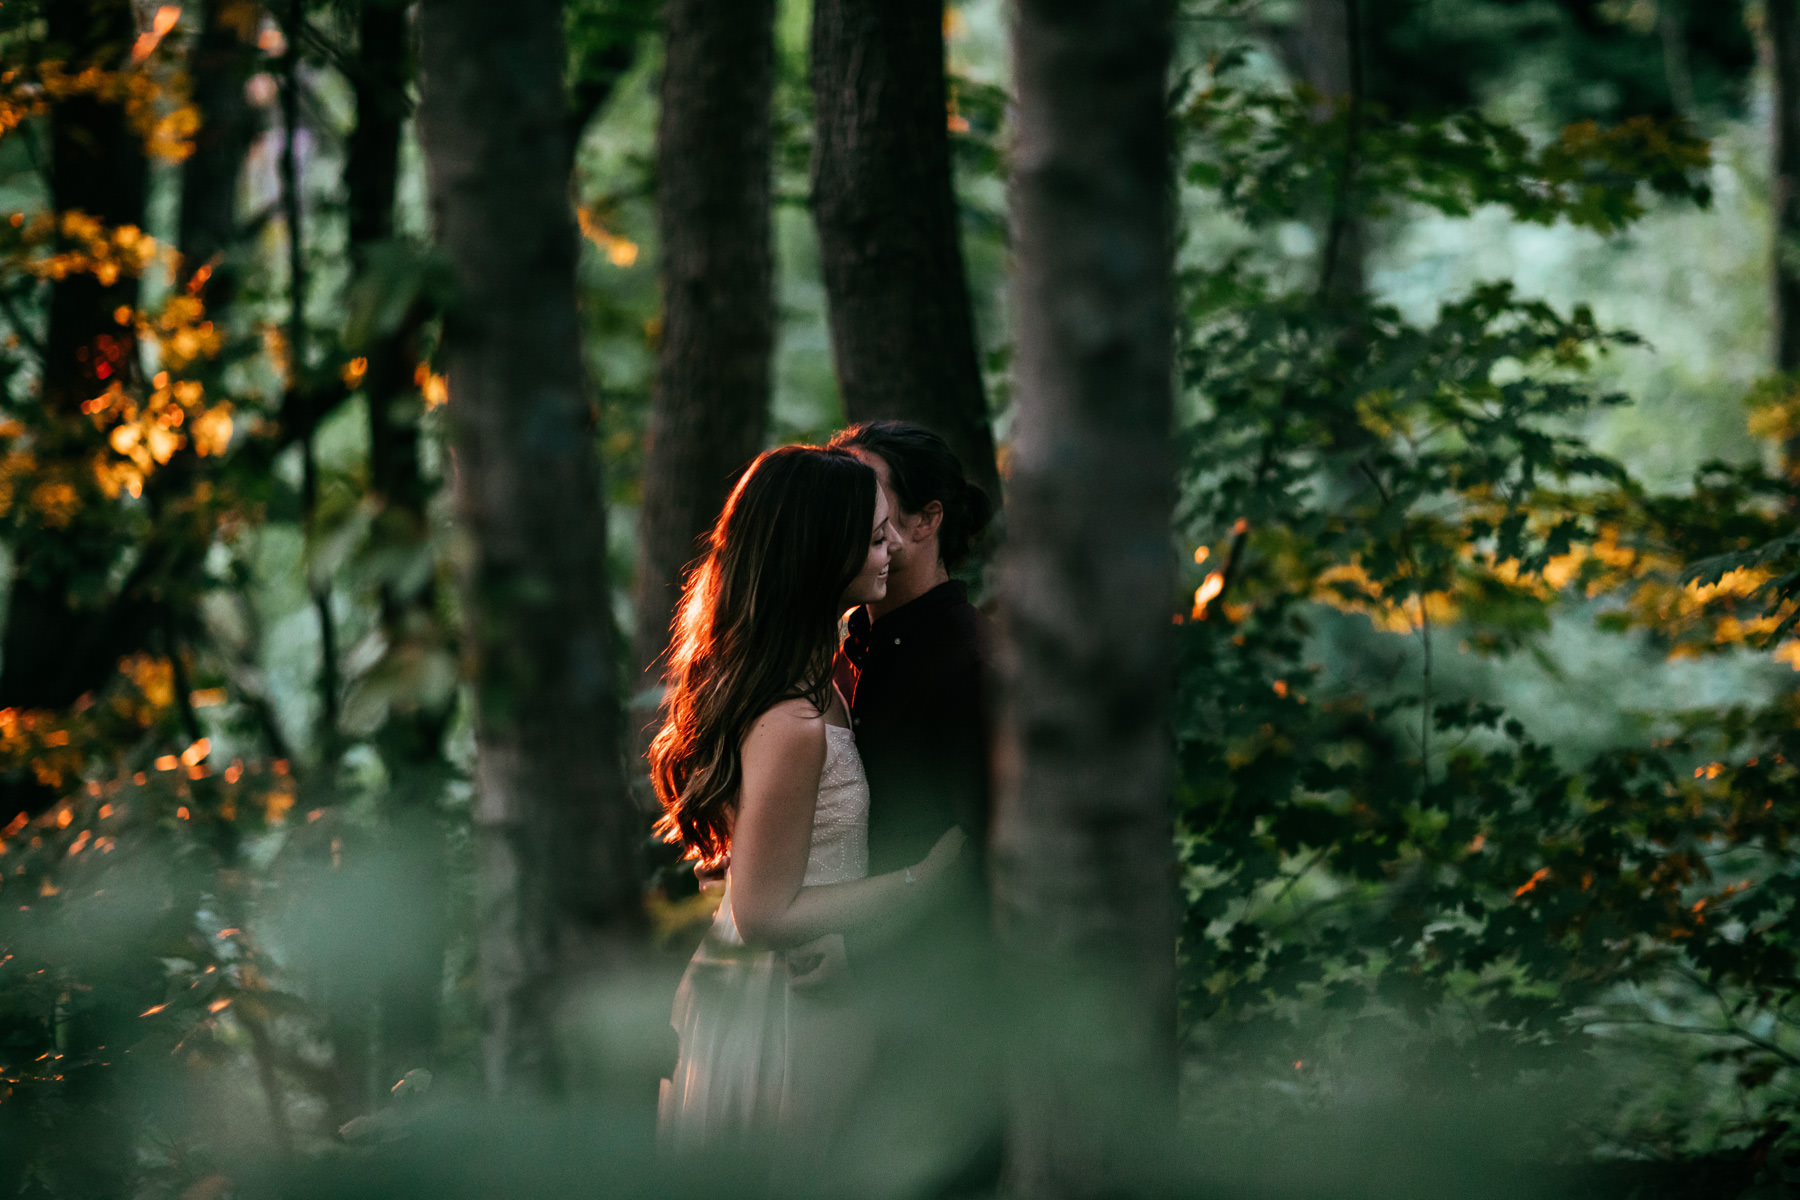 231_Weston Bend State Park Engagement Session Kansas City, Missouri_Kindling Wedding Photography.JPG